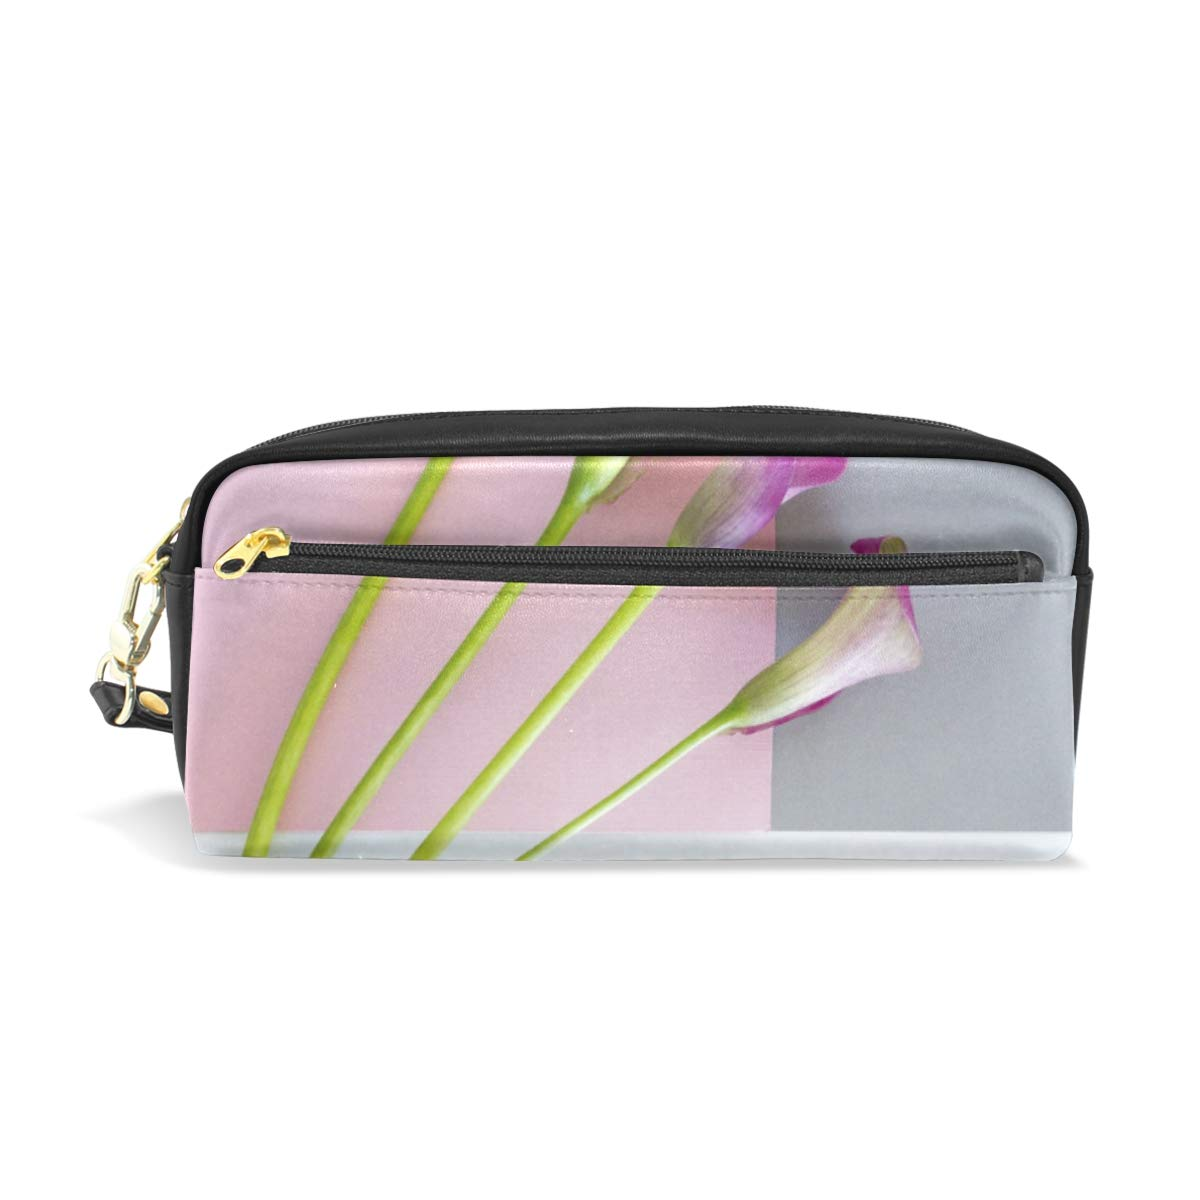 Cute Cosmetic Bag Pencil Case 7.93.52.4IN Recommended Lilies On White Ink Charlotte Mall An